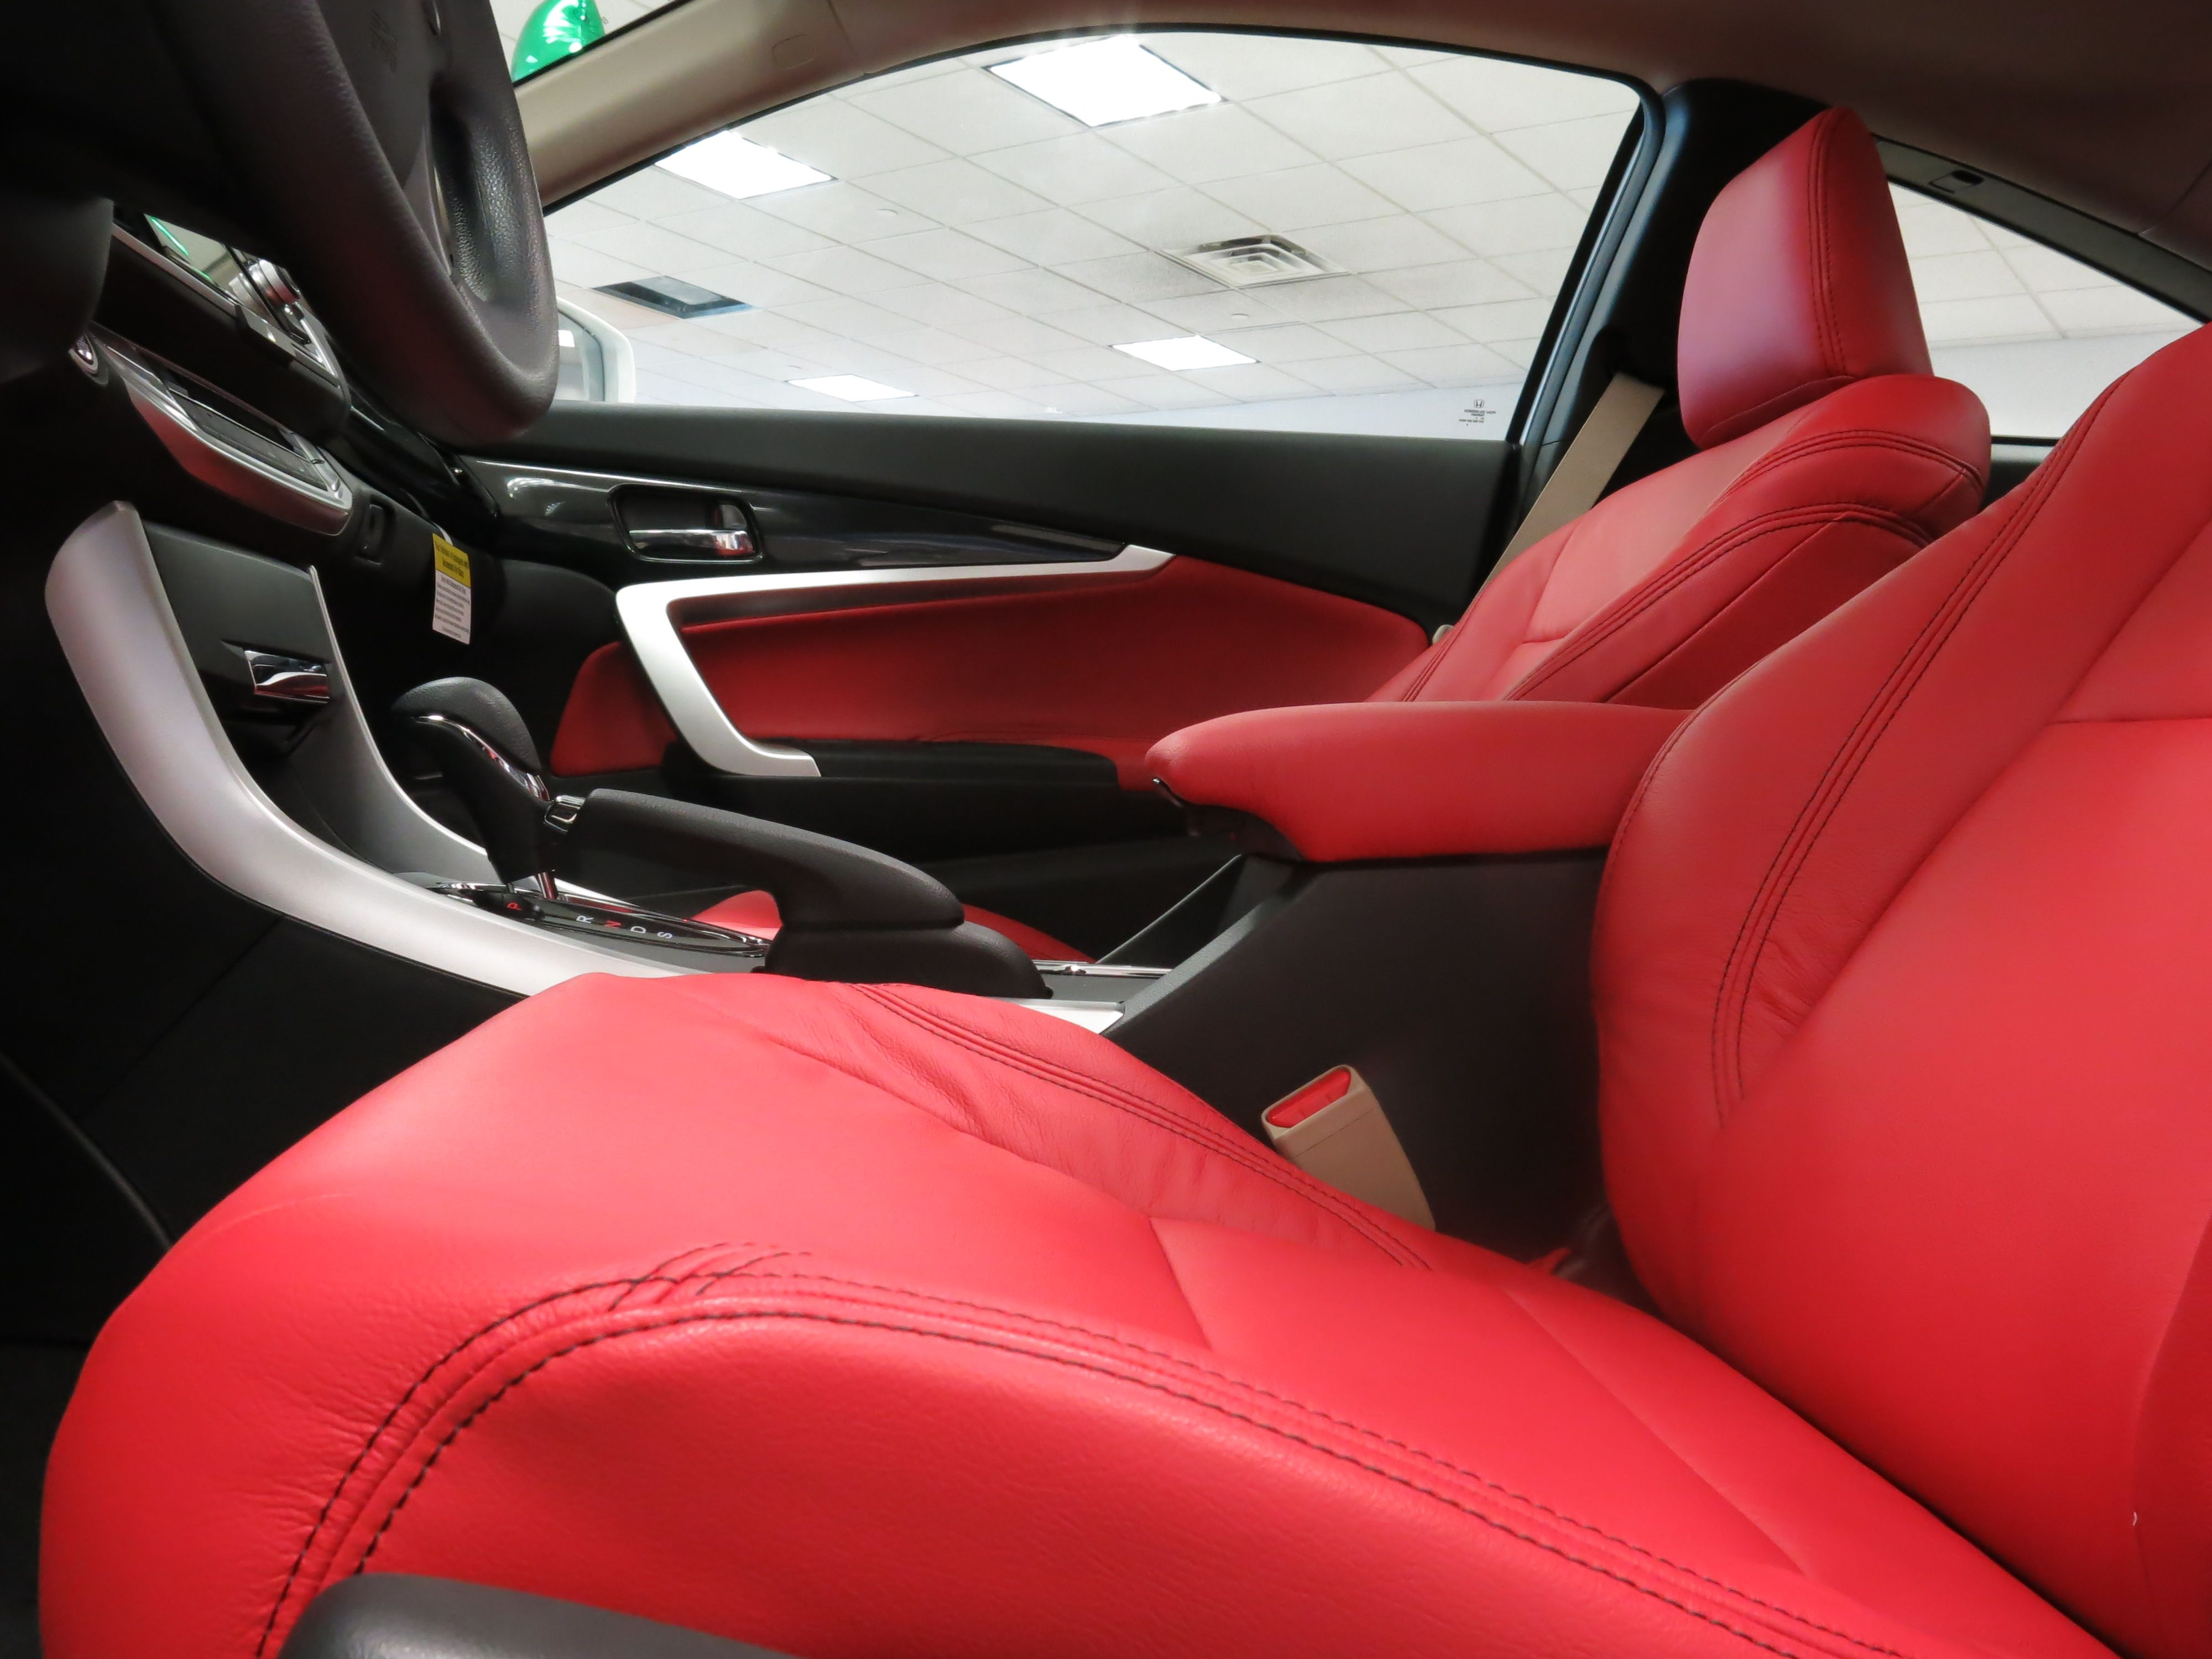 Winter White Meets Red Hot Fury The Custom Leather Seats We Installed On This 2015 Honda Accord